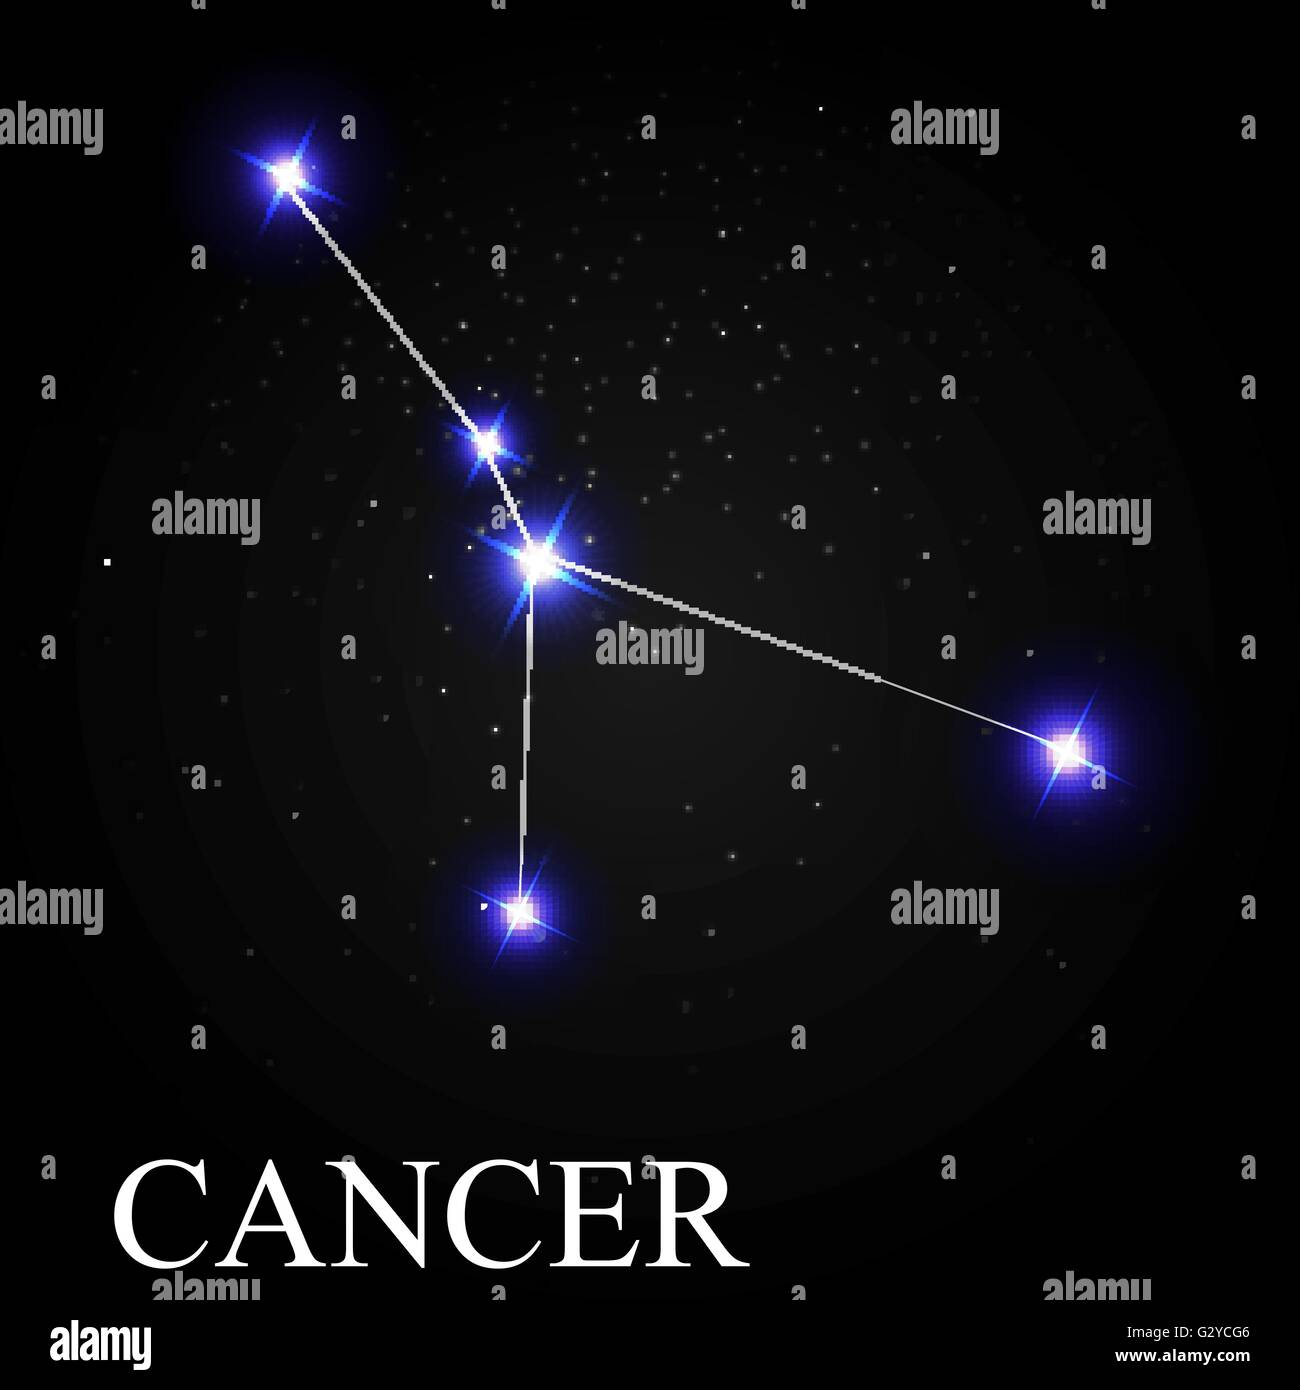 Cancer zodiac sign with beautiful bright stars on the background cancer zodiac sign with beautiful bright stars on the background biocorpaavc